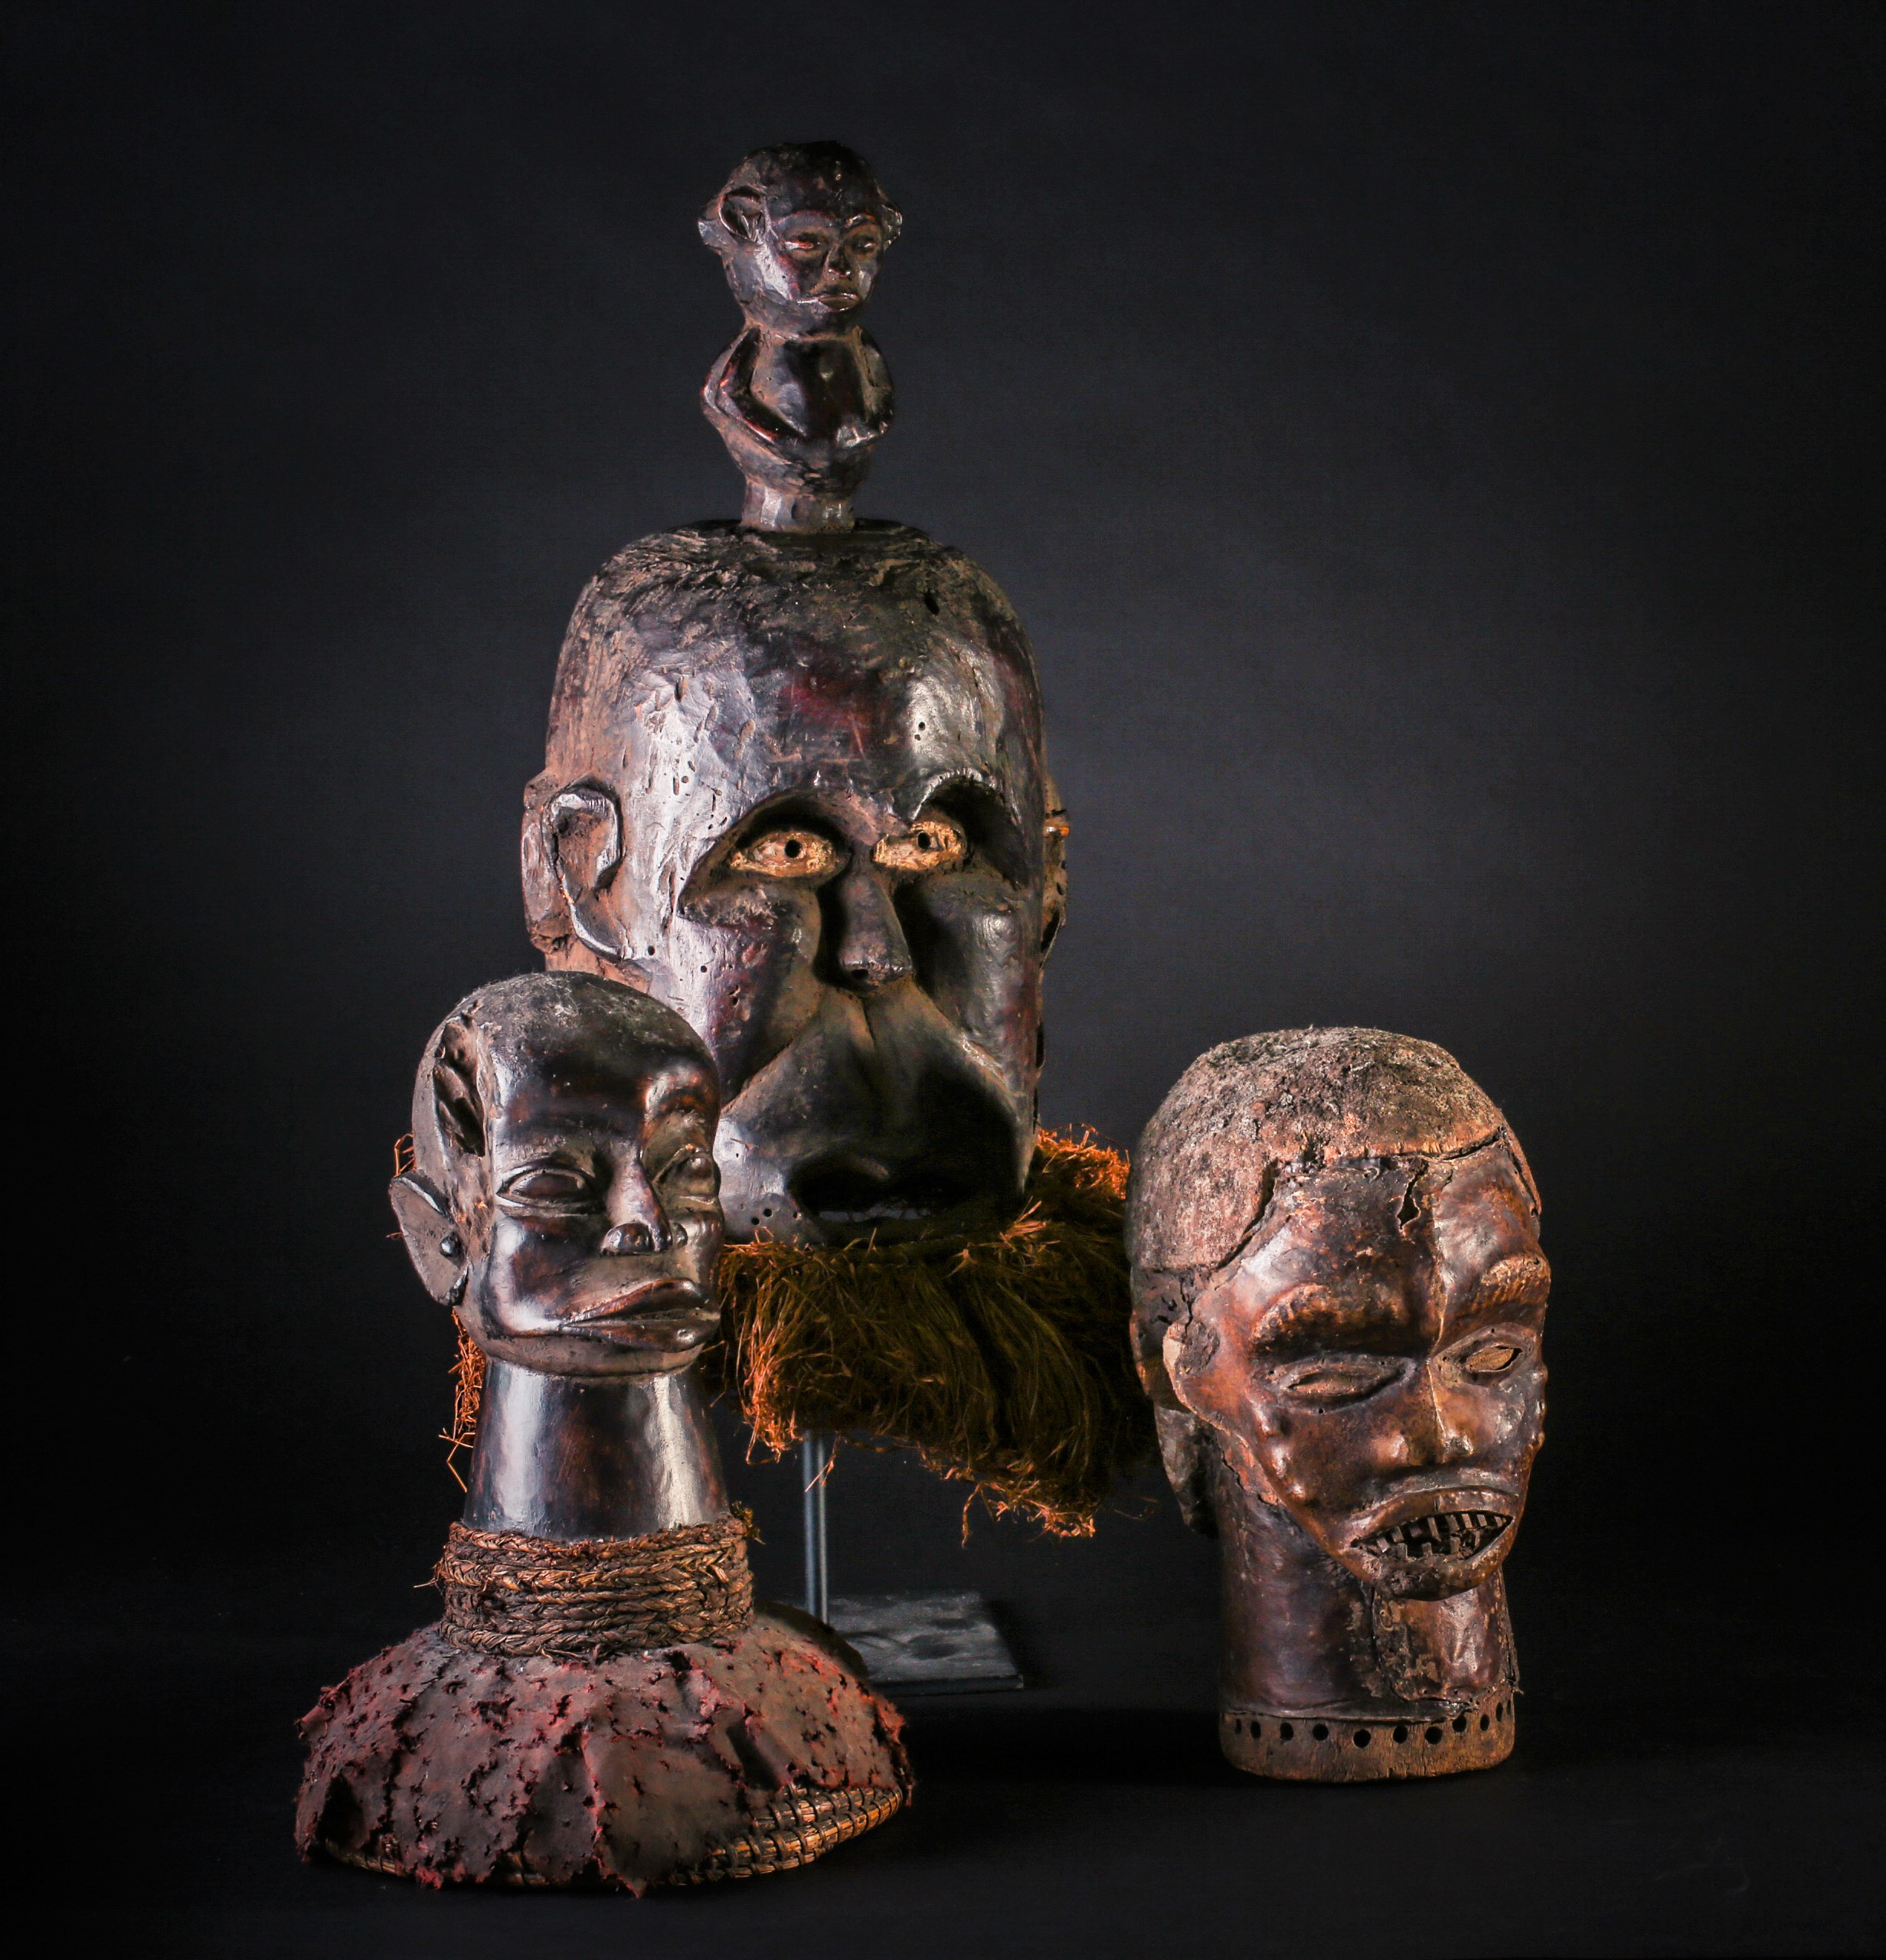 Ethnographica & Tribal Art